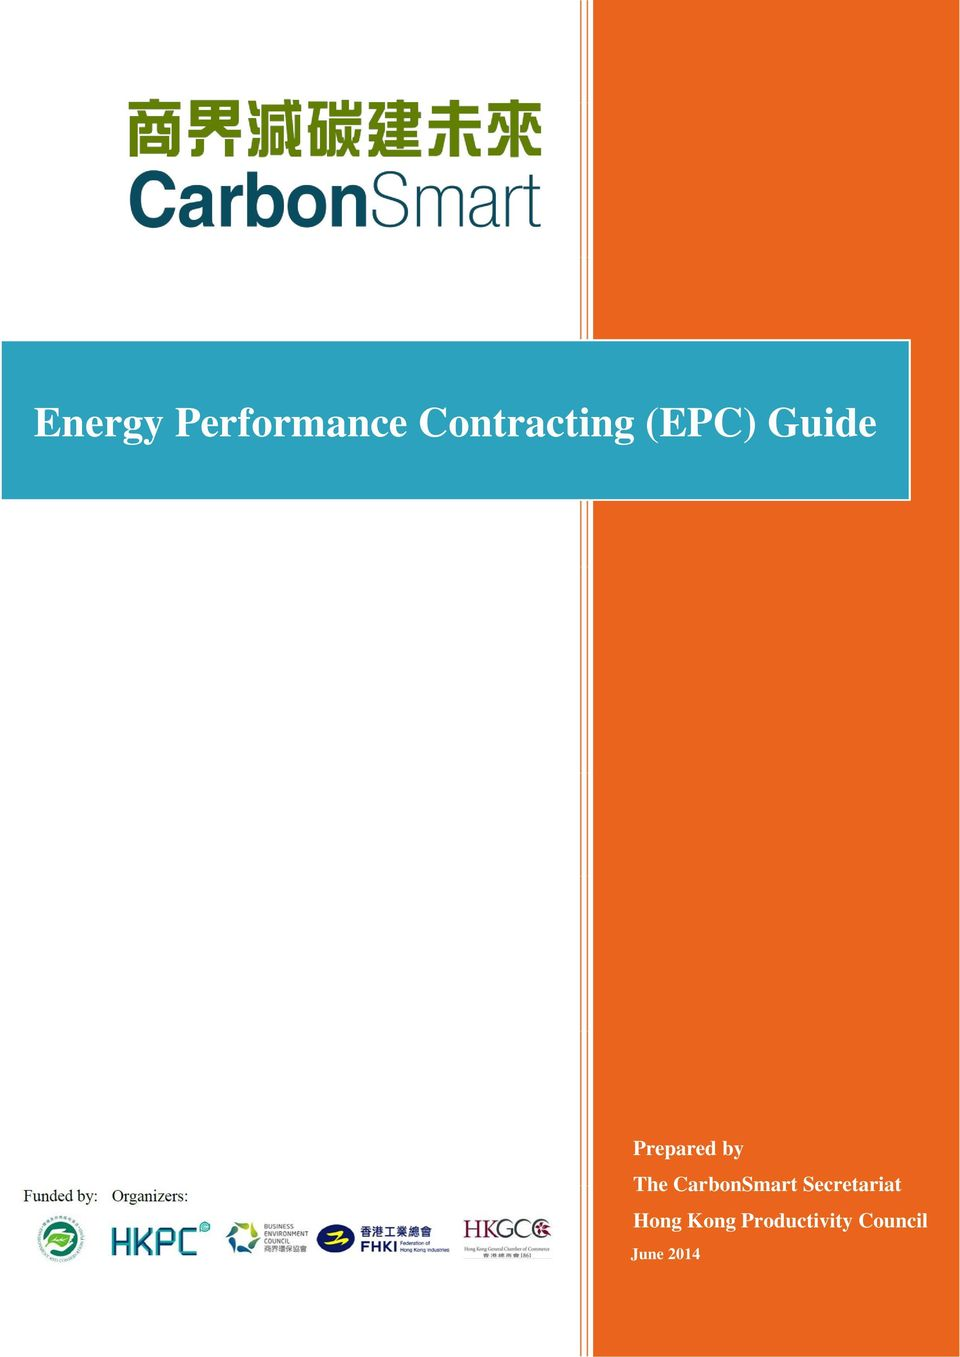 GUIDEBOOK Prepared by The CarbonSmart